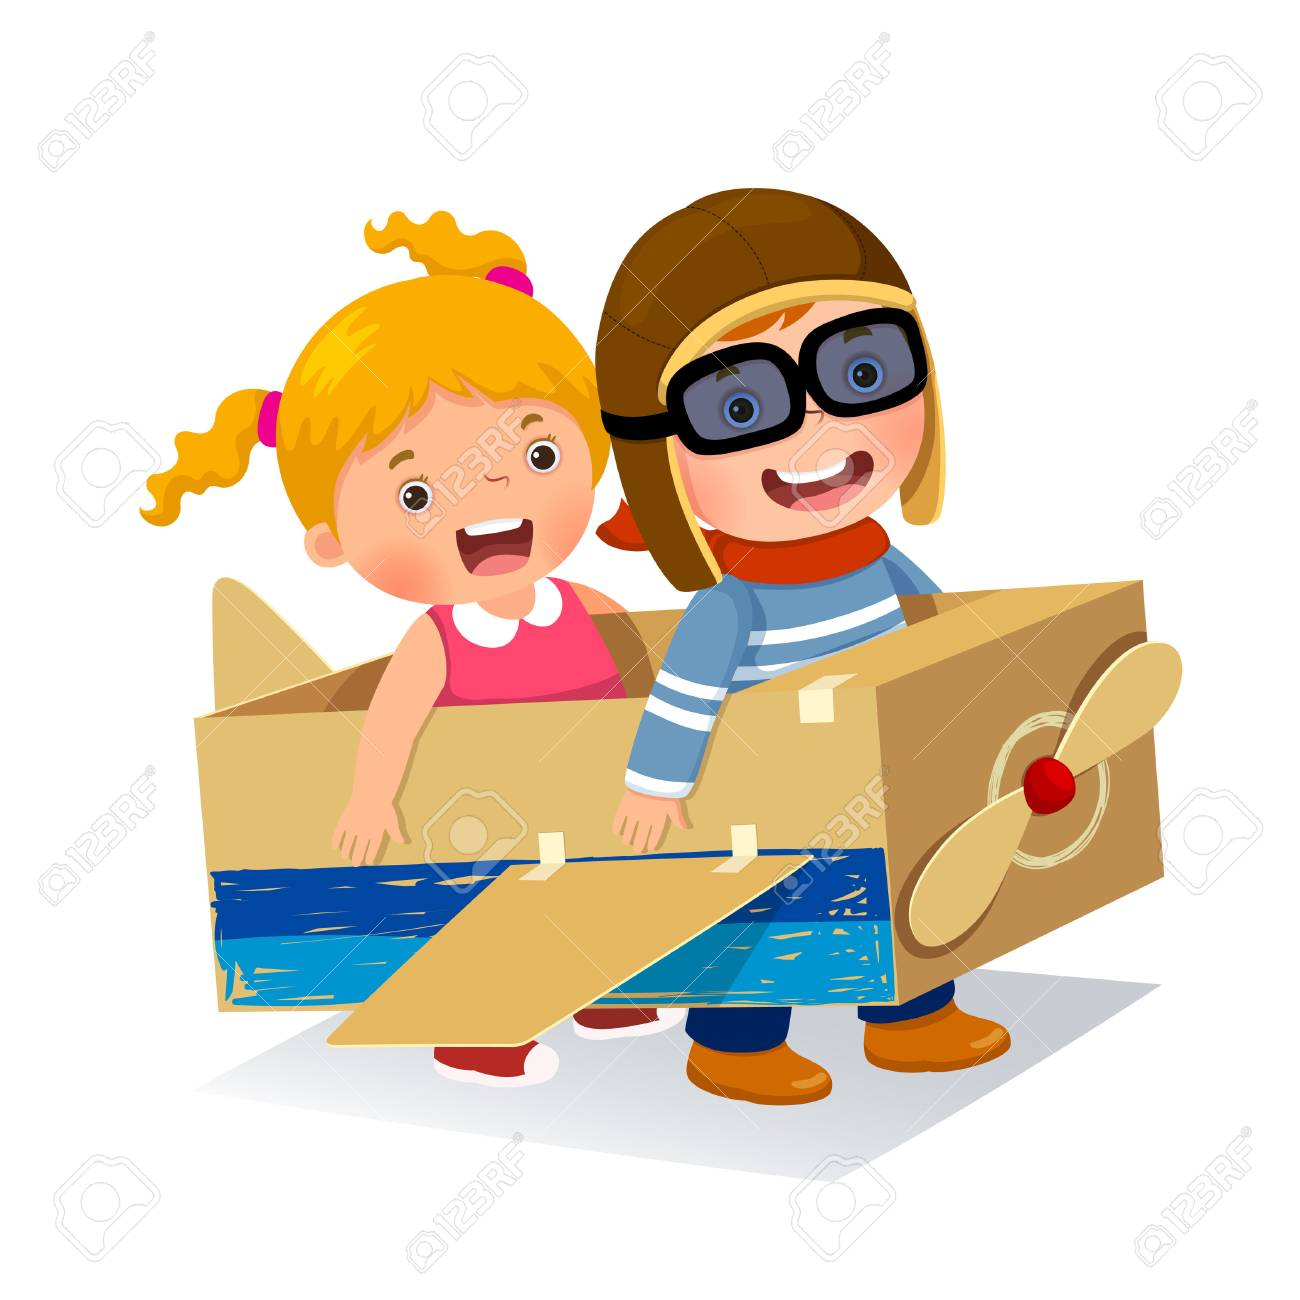 Creative boy playing as a pilot with cardboard airplane - 80107980